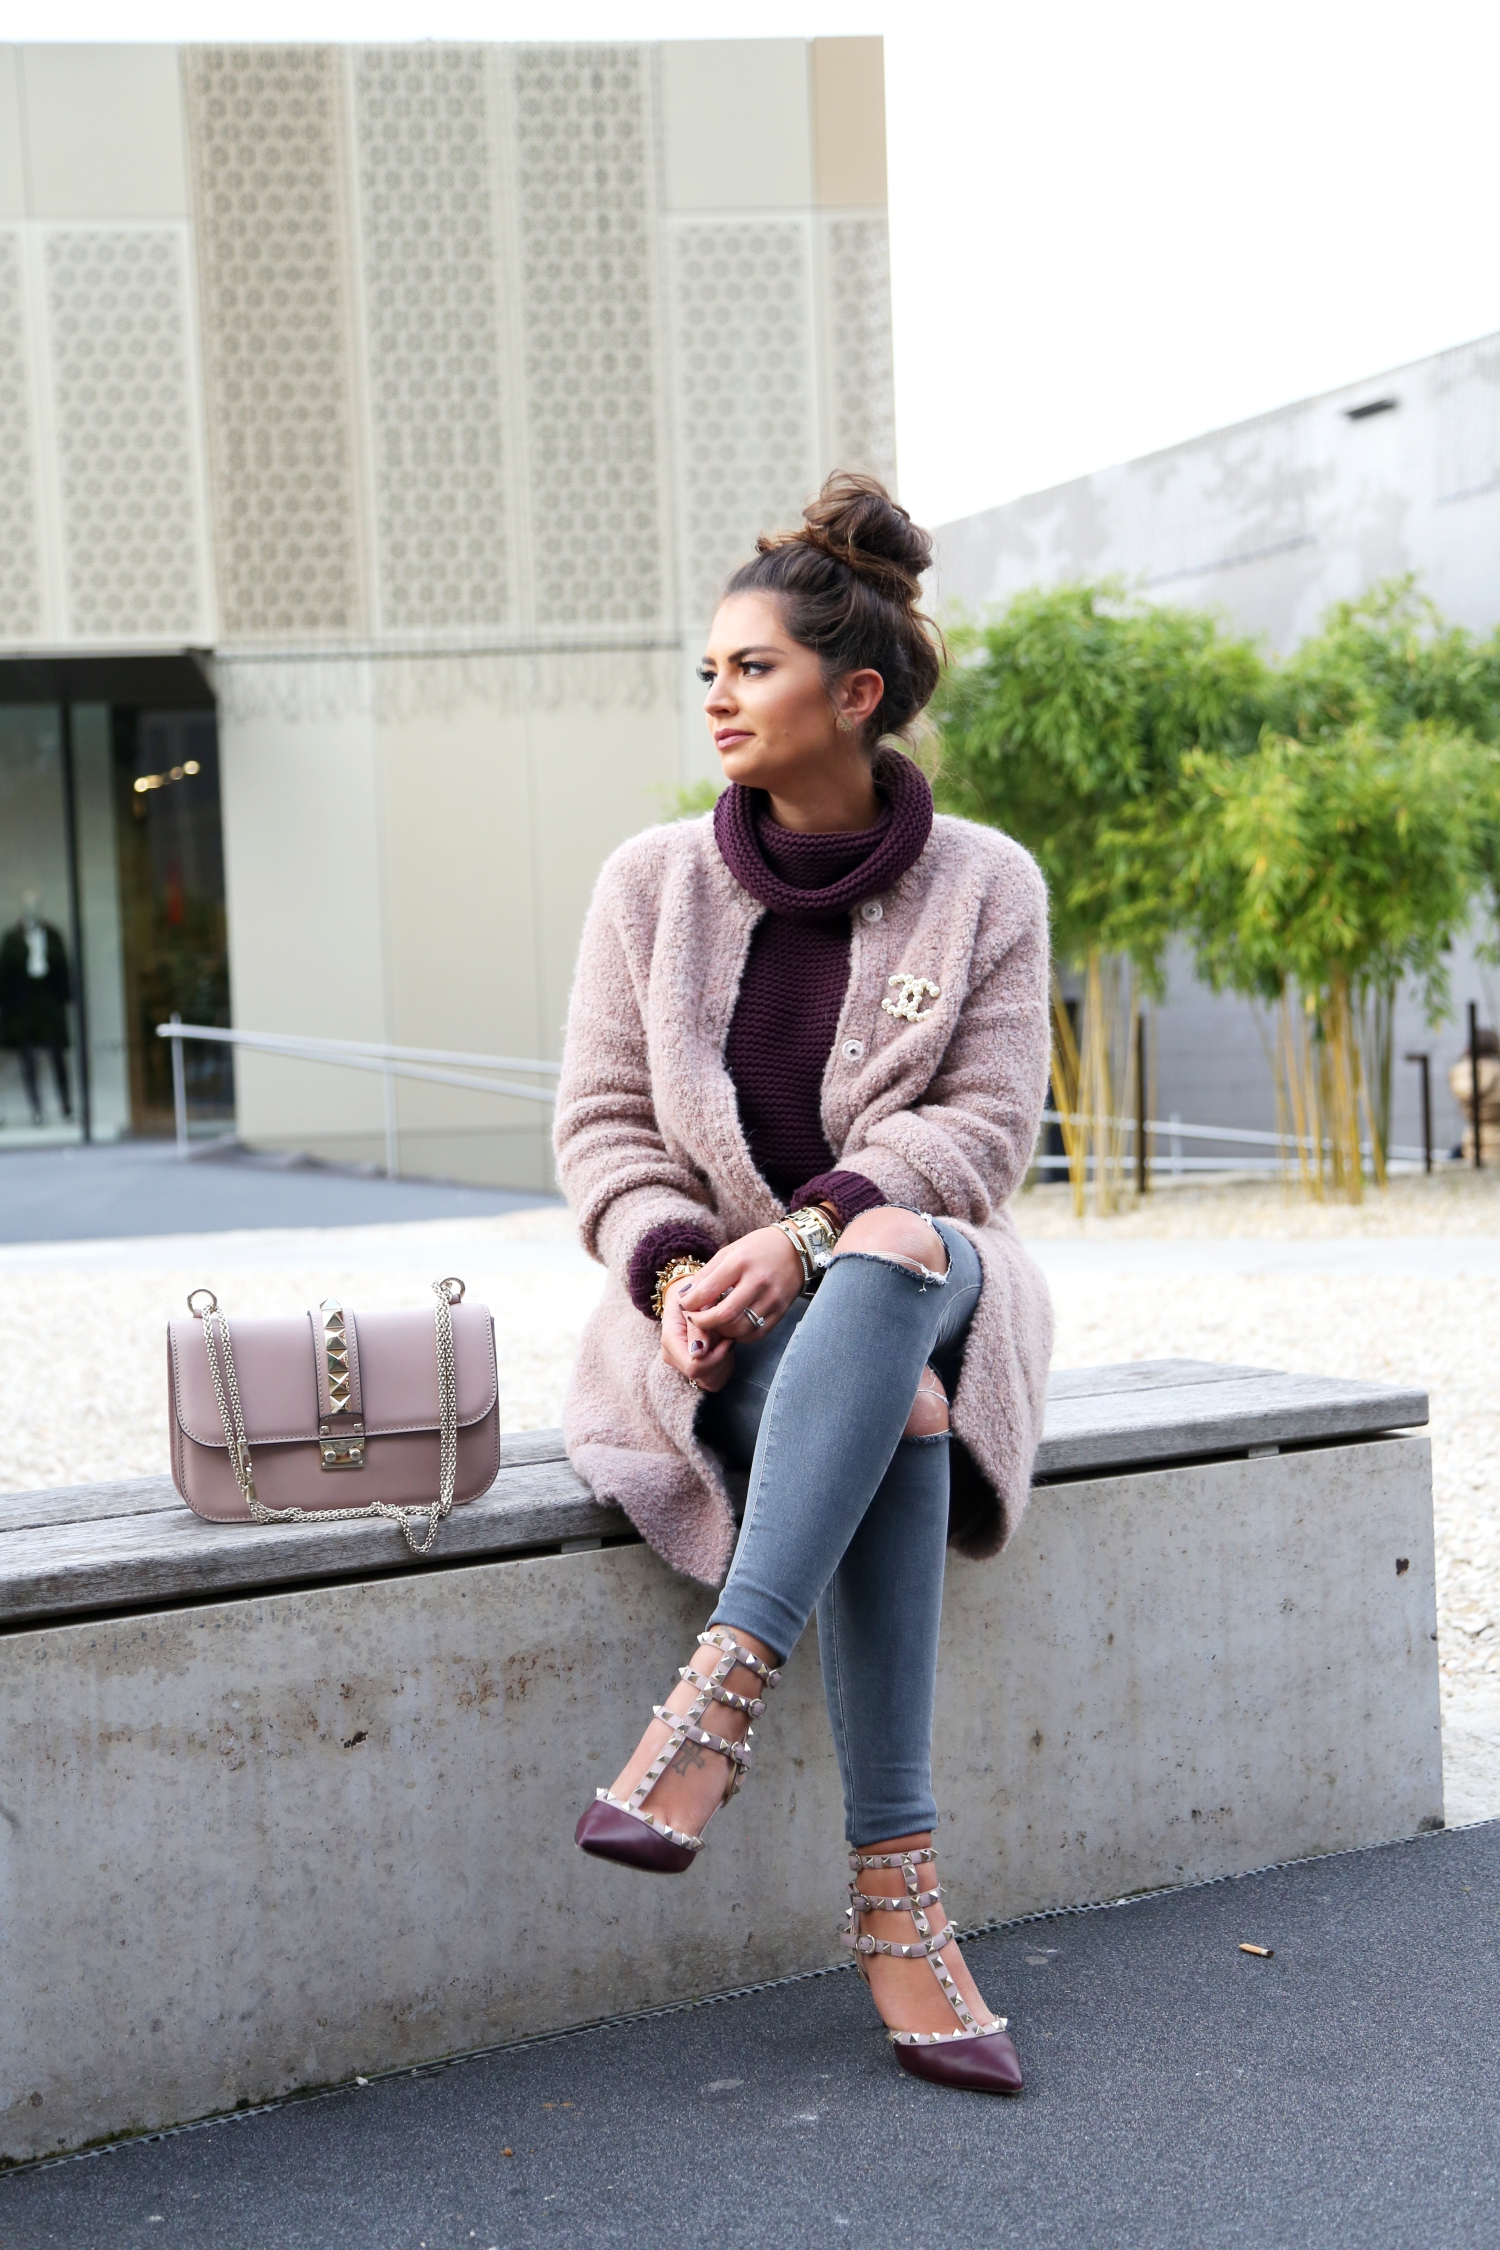 outfit-fashionhippieloves-chanel-brooch-valentino-pumps-bag-topshop-grey-ripped-jeans-hallhuber-turtle-neck-sweater-cardigan-fashionhippieloves